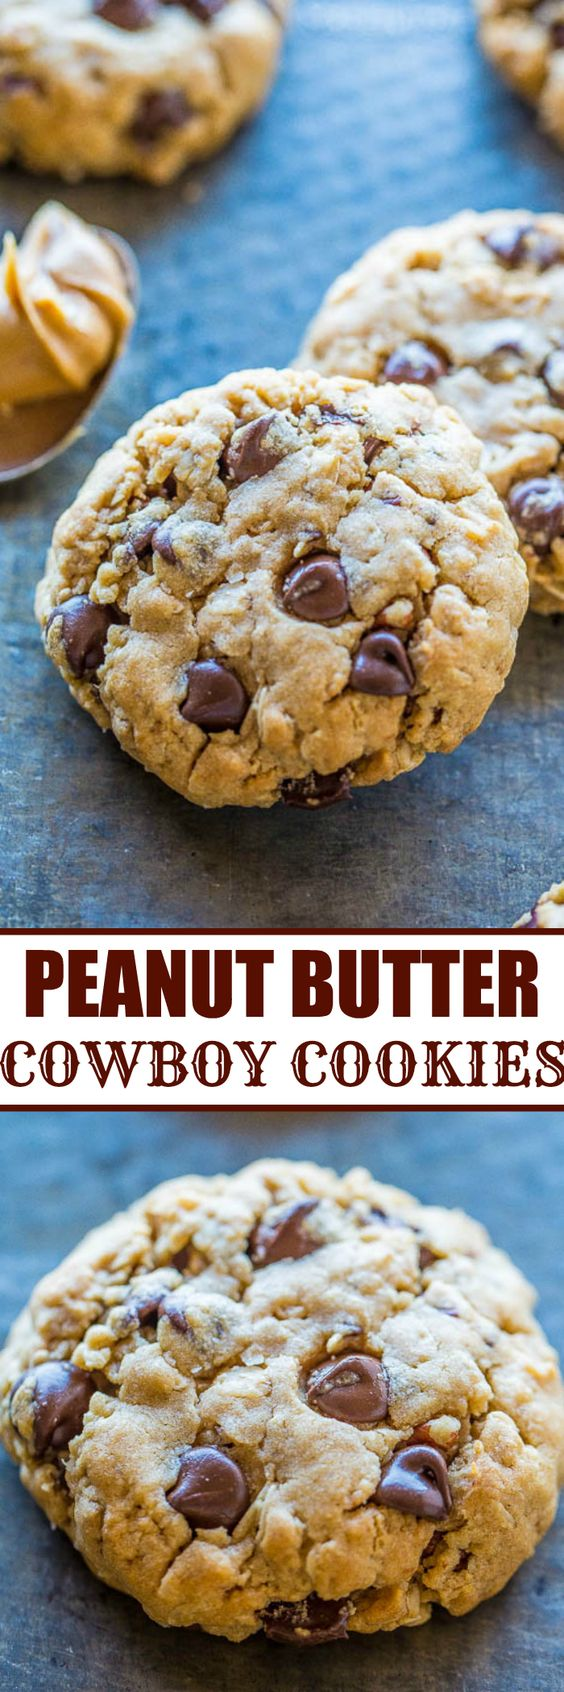 Butter Cowboy Cookies - Chewy oats, sweet coconut, crunchy pecans ...